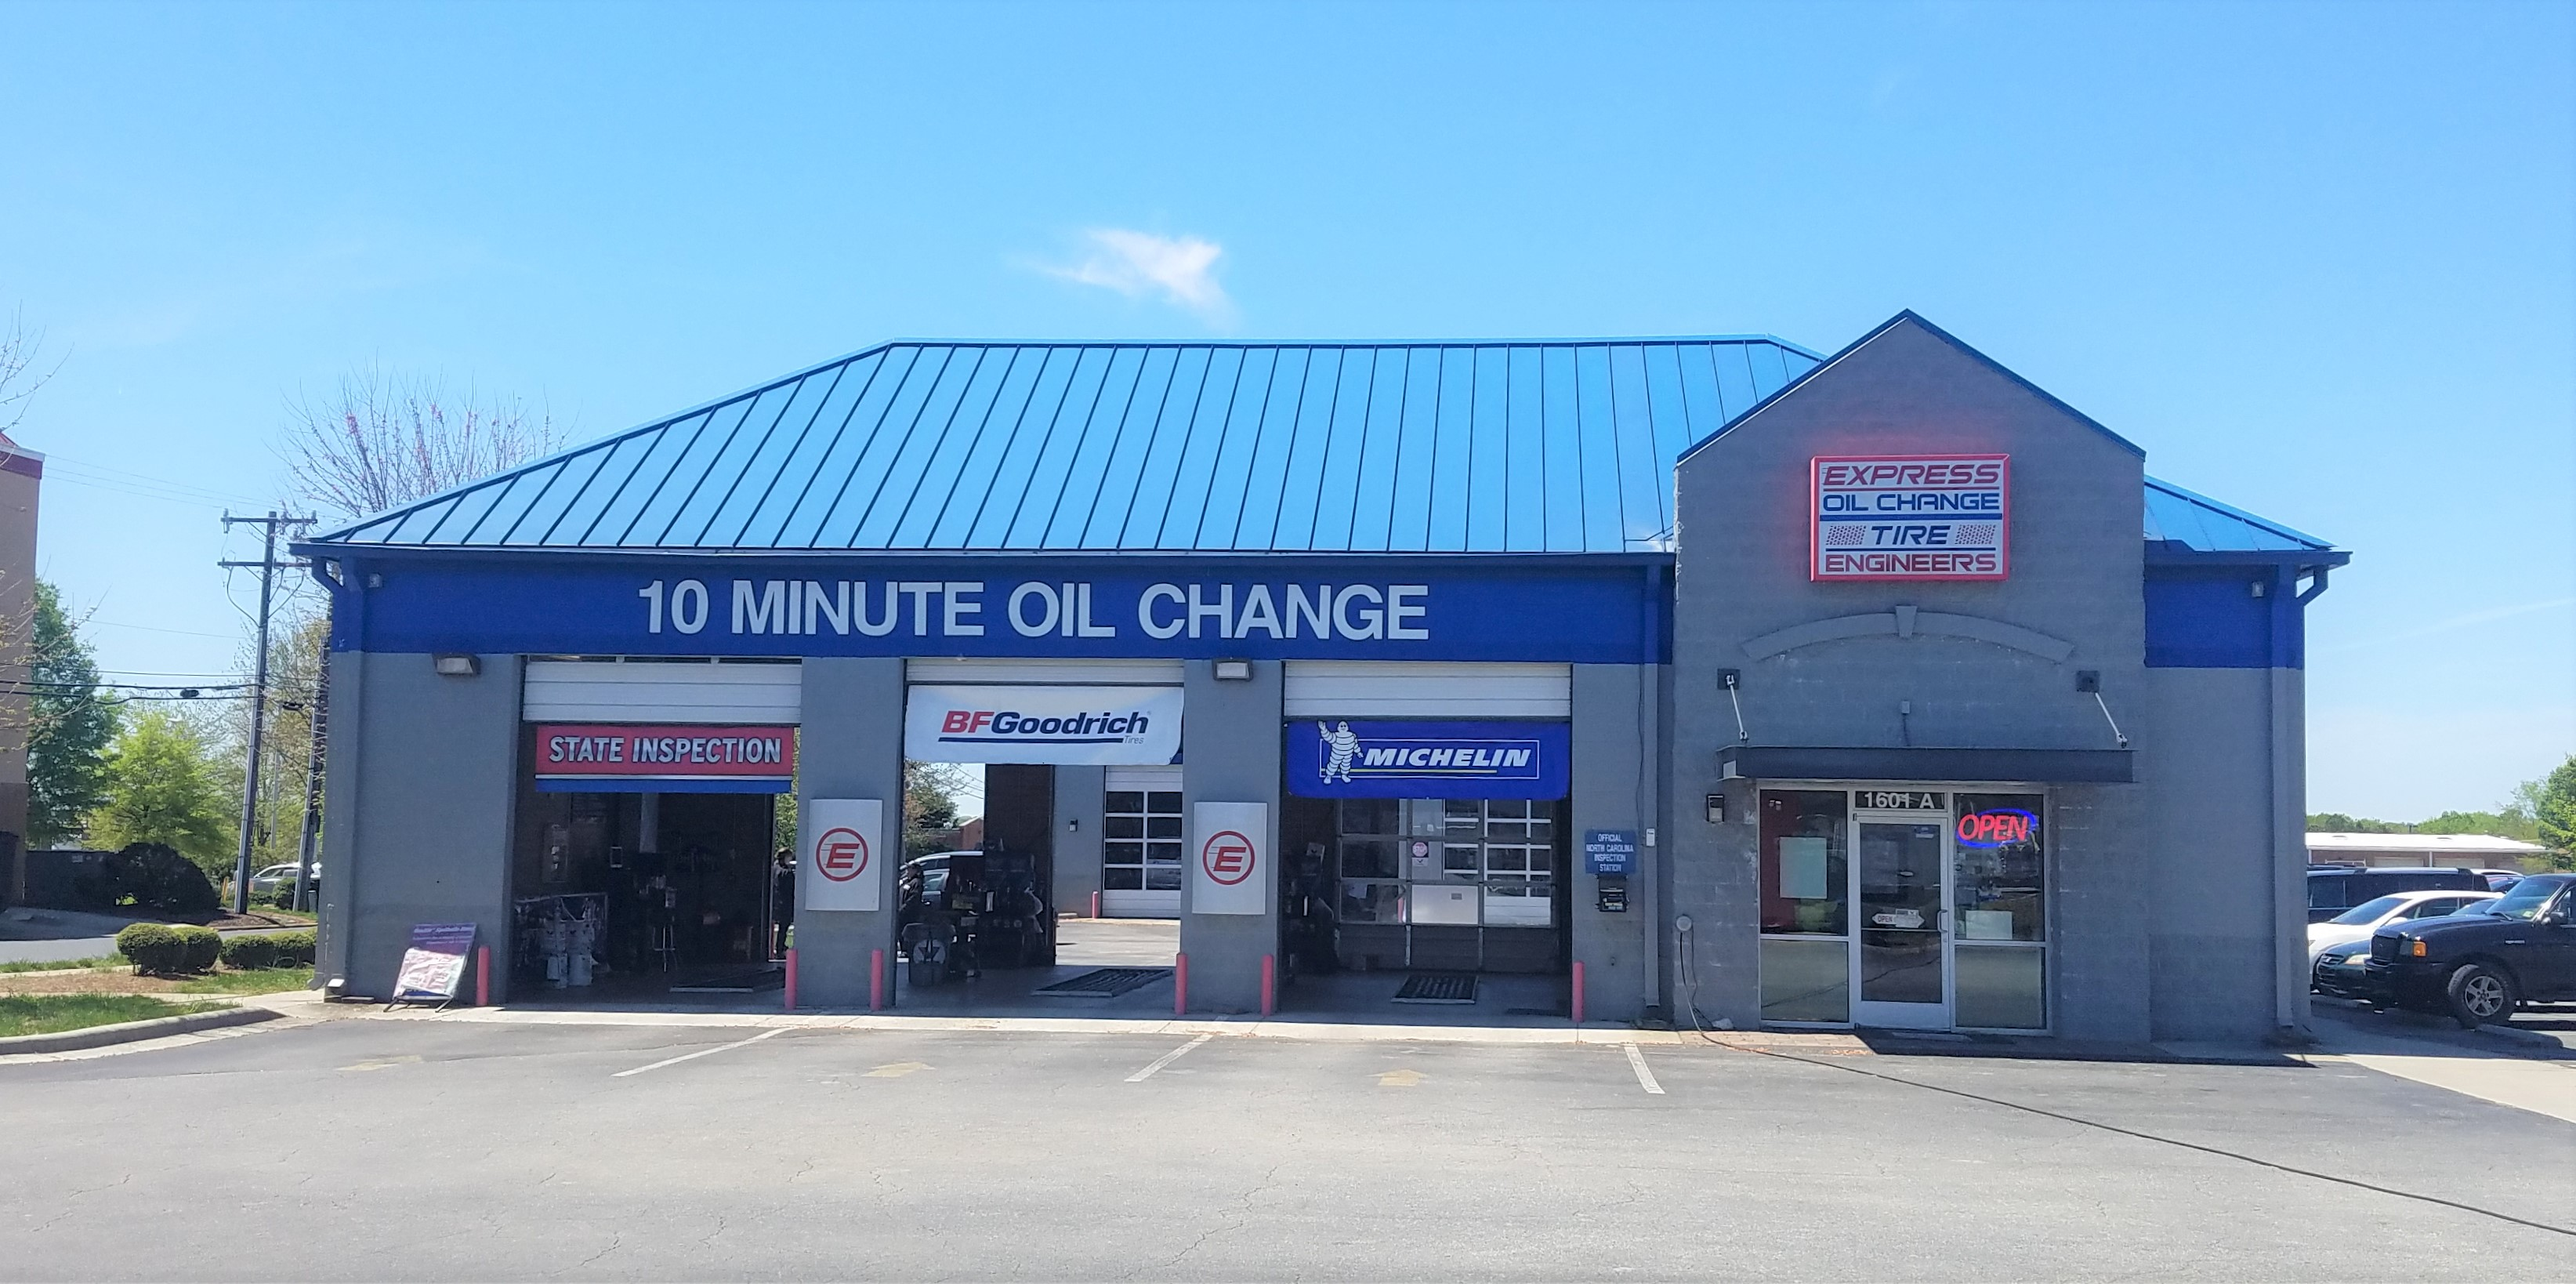 Express Oil Change & Tire Engineers Greensboro, NC - Battleground store